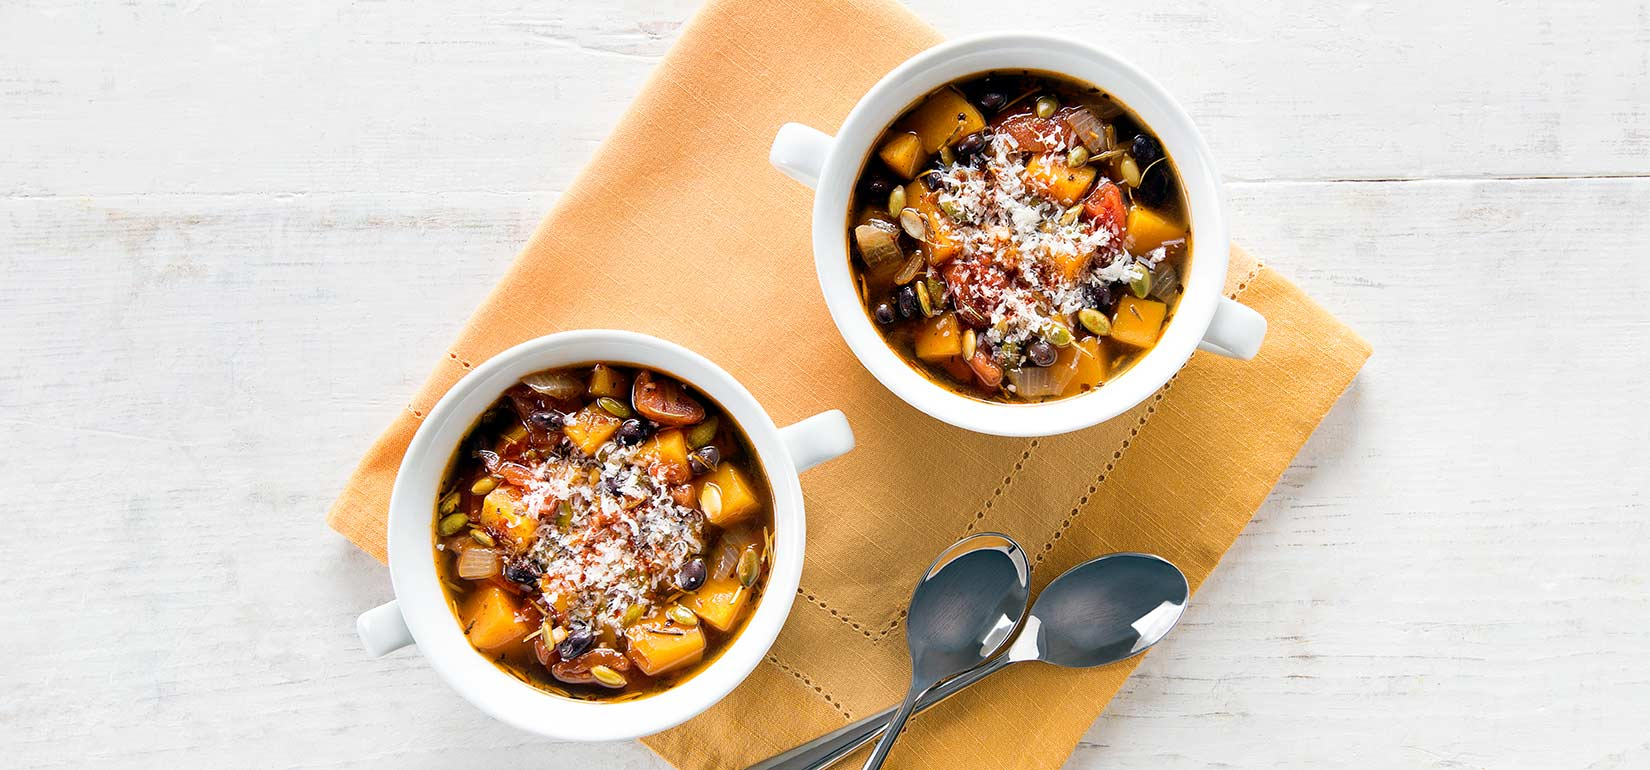 Simply Organic Holiday Organic Hearty Black Bean and Pumpkin Soup Recipe